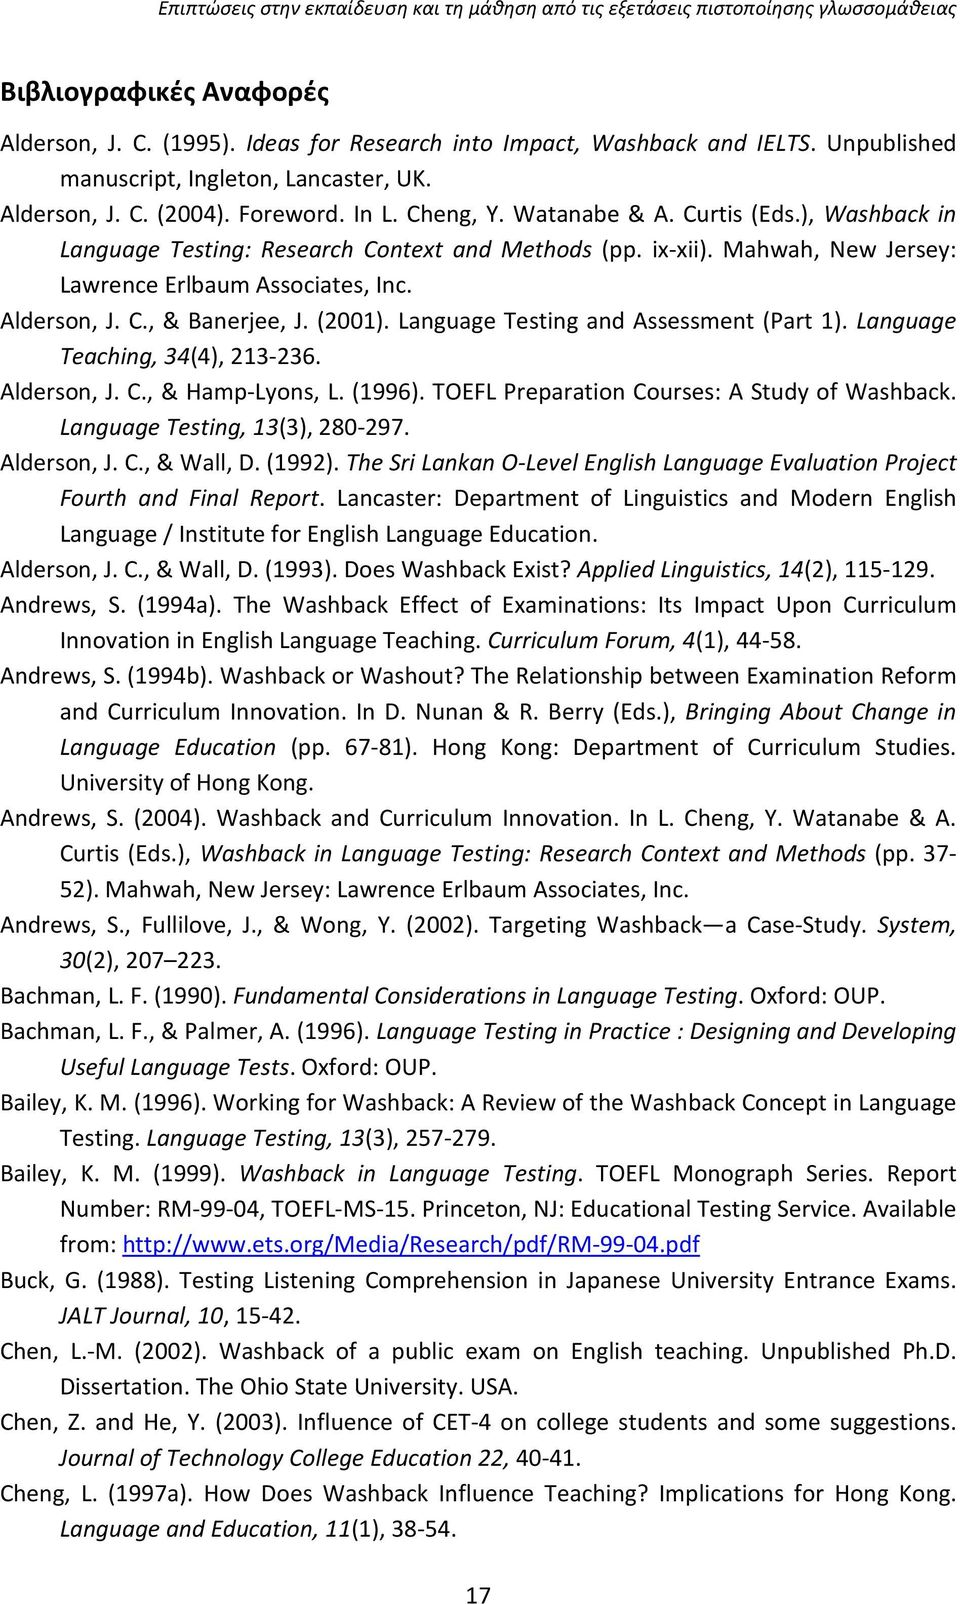 Language Testing and Assessment (Part 1). Language Teaching, 34(4), 213-236. Alderson, J. C., & Hamp-Lyons, L. (1996). TOEFL Preparation Courses: A Study of Washback. Language Testing, 13(3), 280-297.